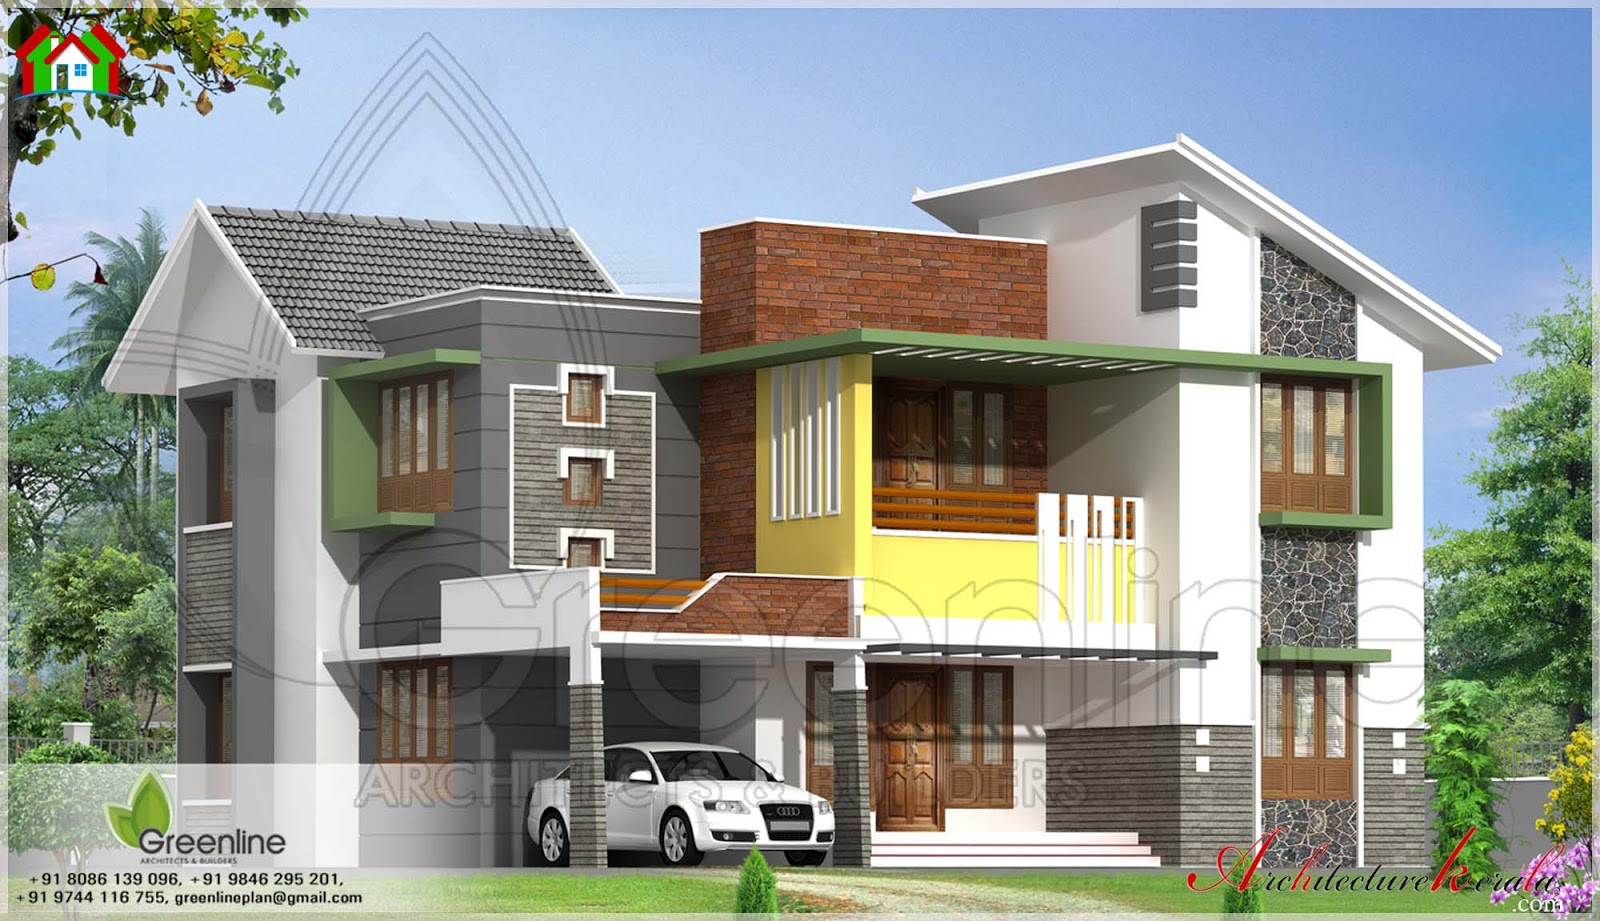 Modern style house elevation architecture kerala for Contemporary home elevations